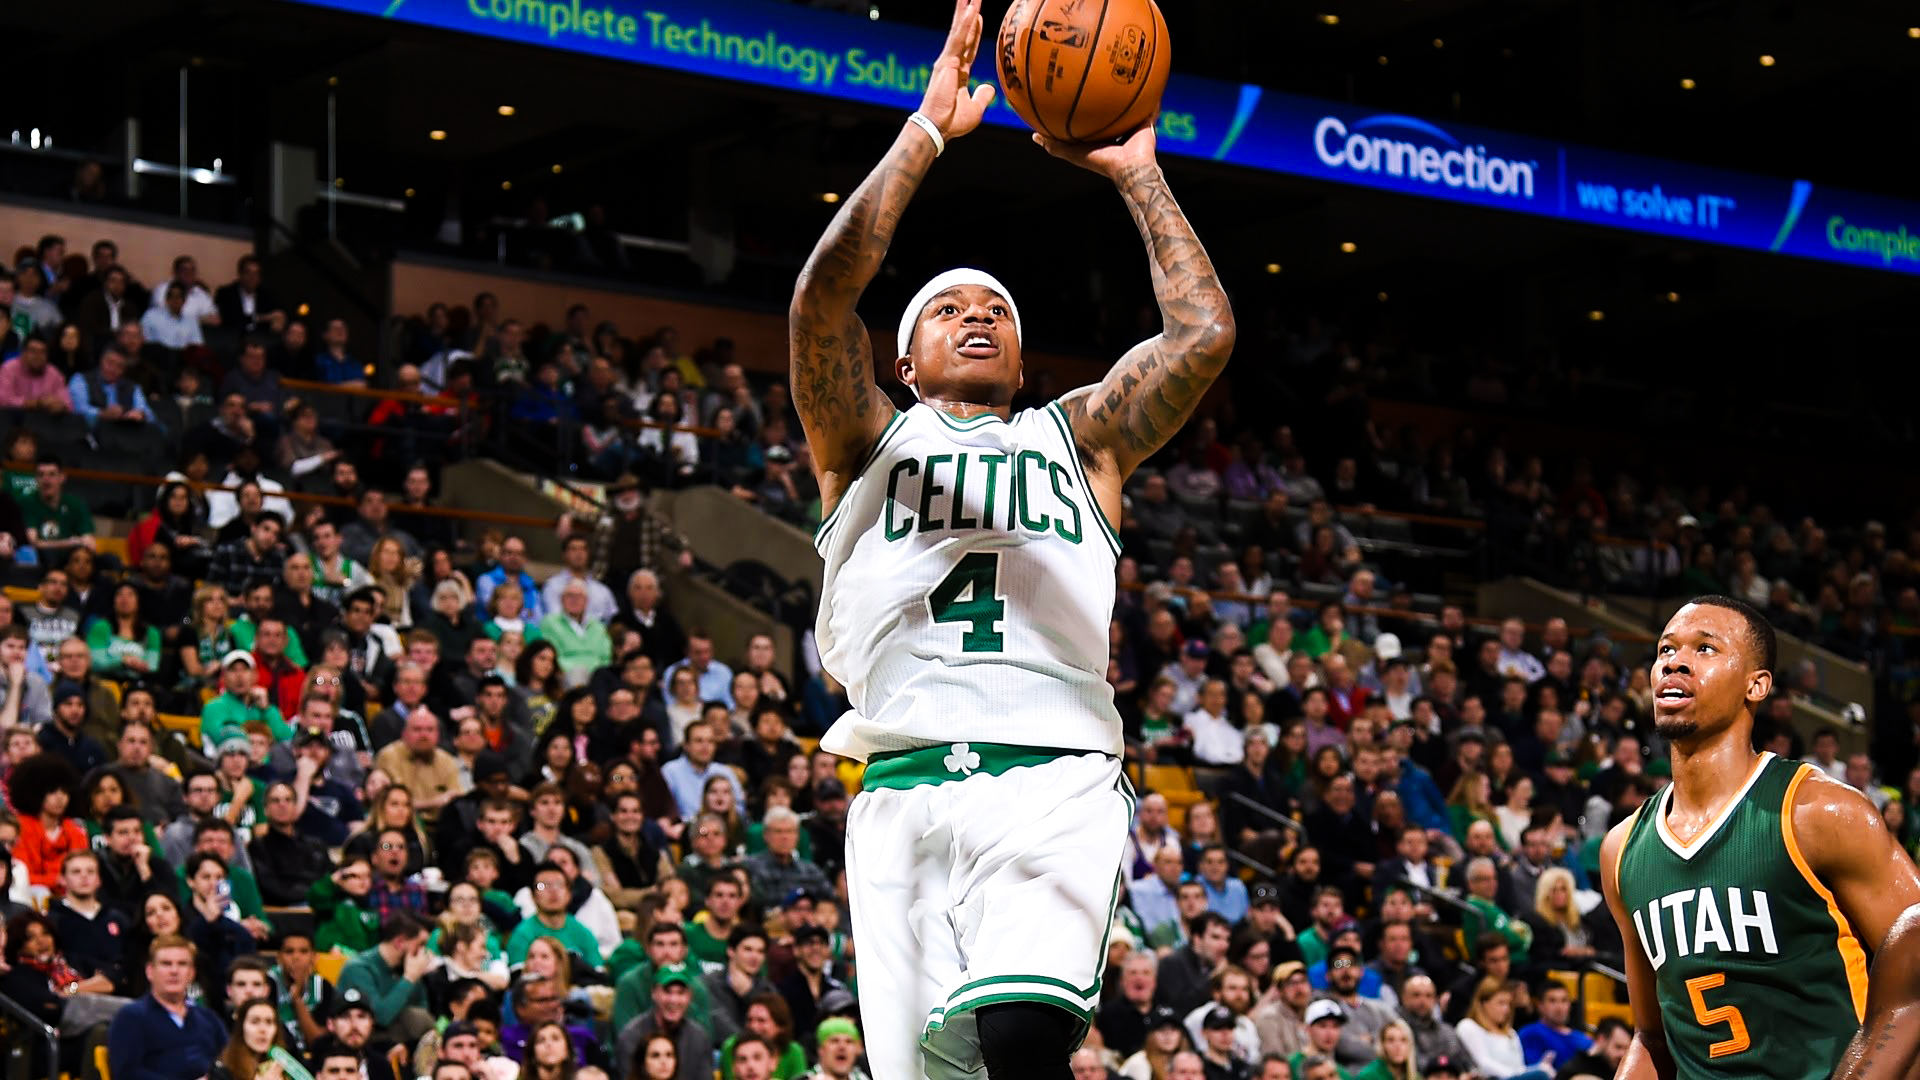 isaiah thomas celtics widescreen desktop wallpaper 902